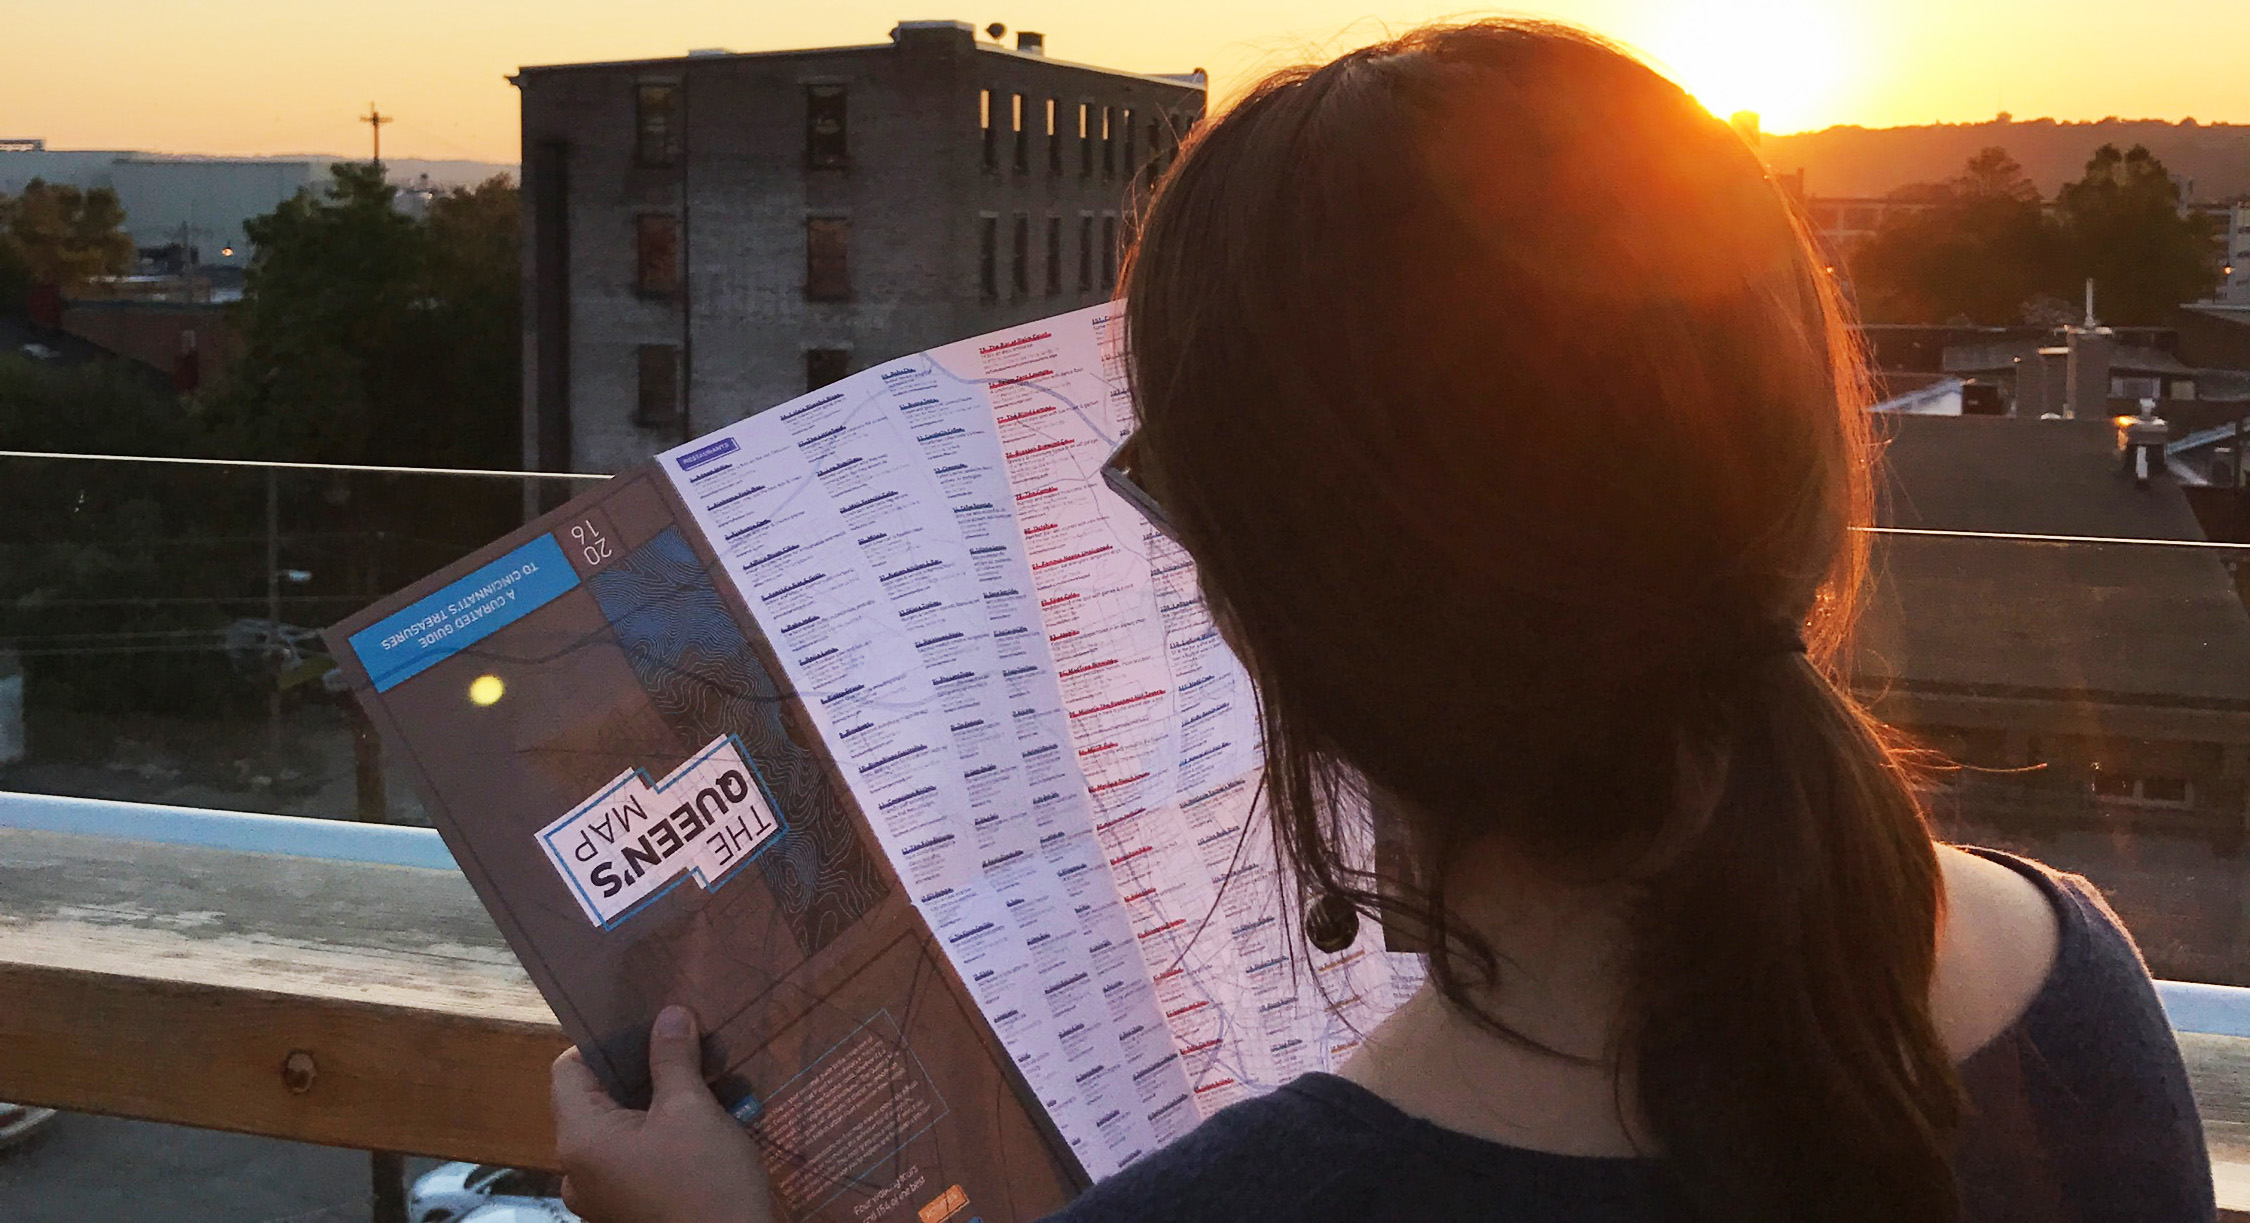 Picture by Megan Gotsch of the map in action!